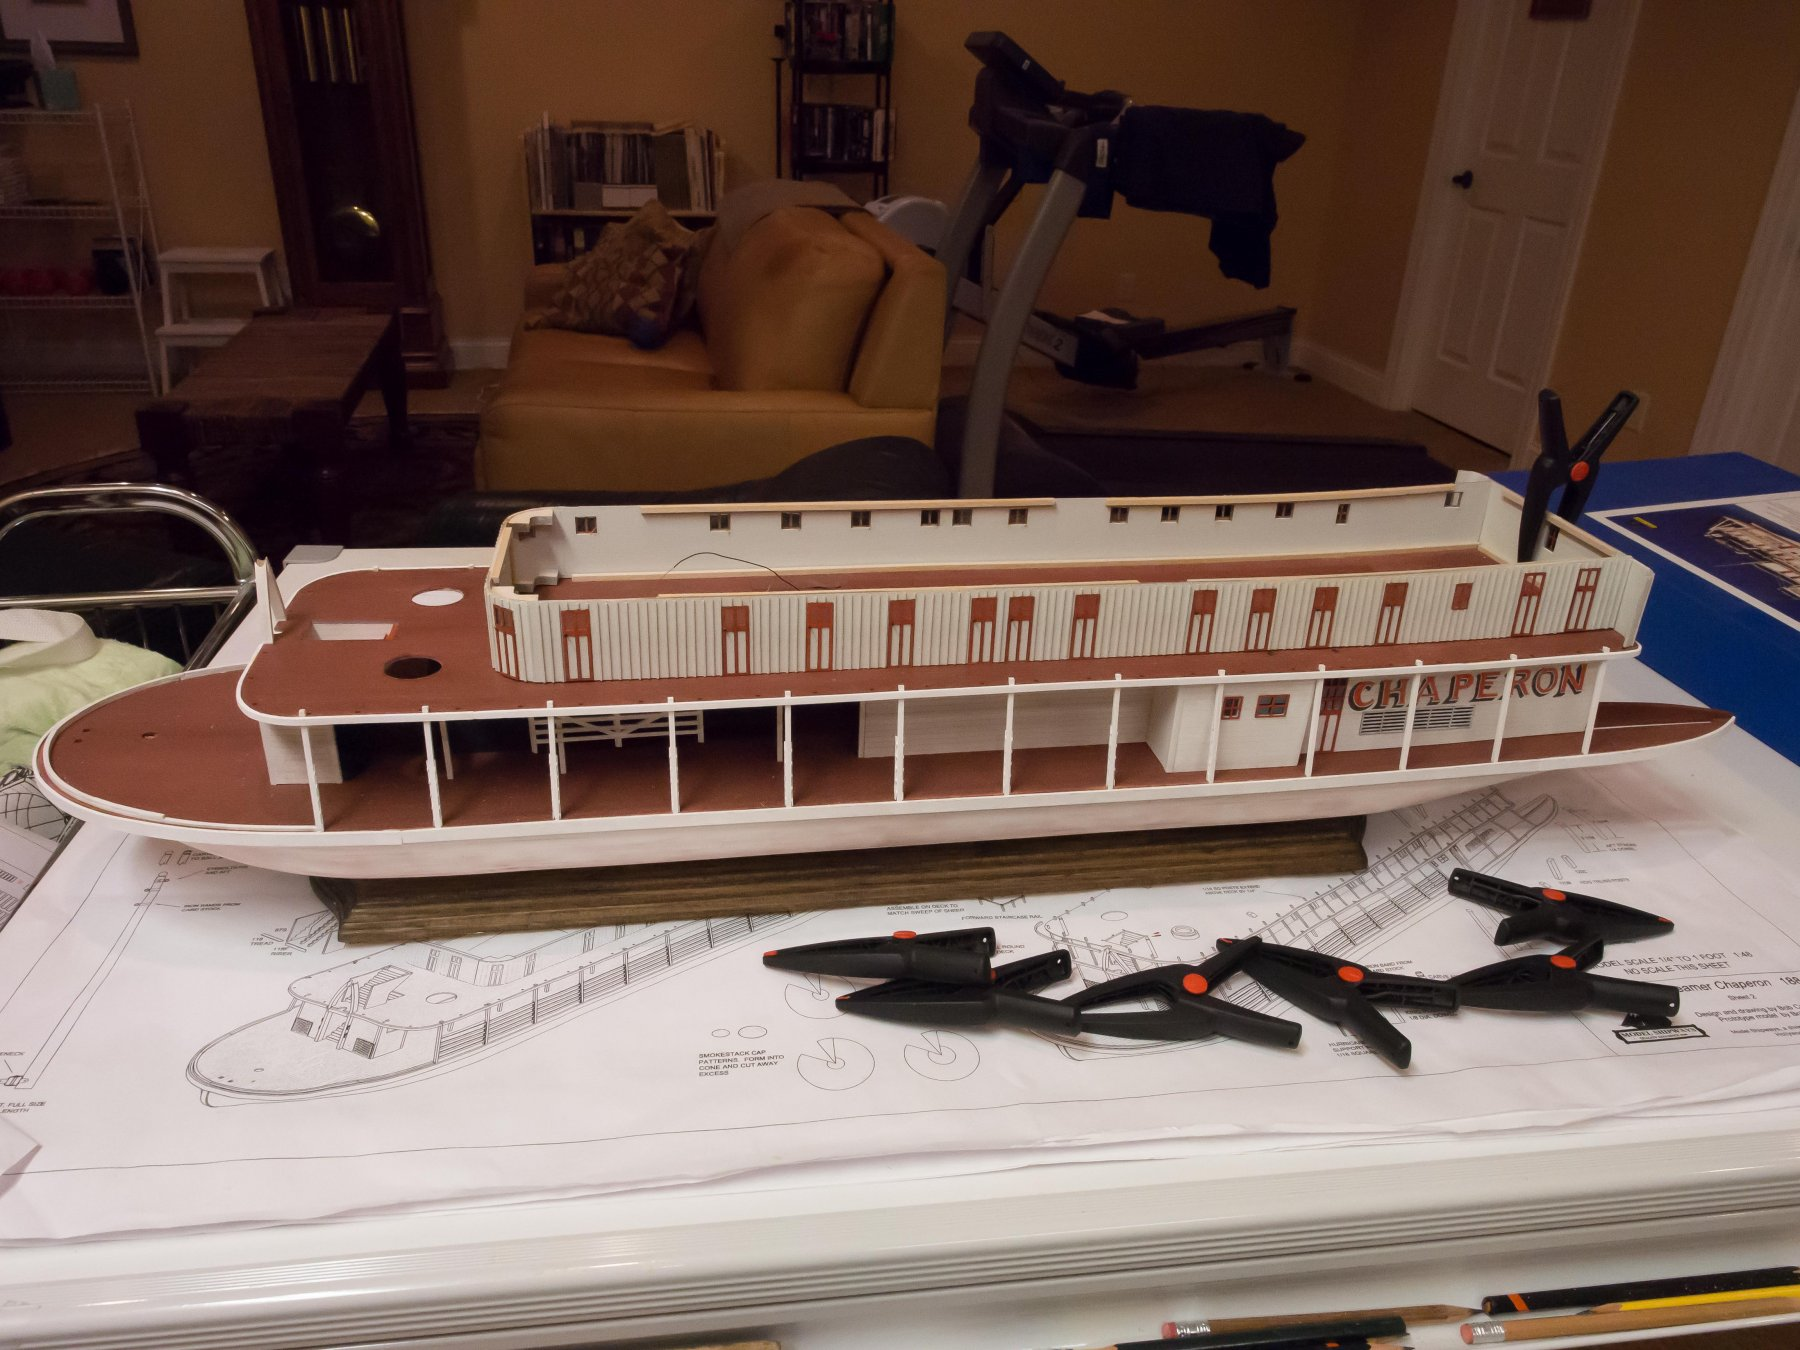 Chaperon by Brucealanevans - FINISHED - Model Shipways - 1